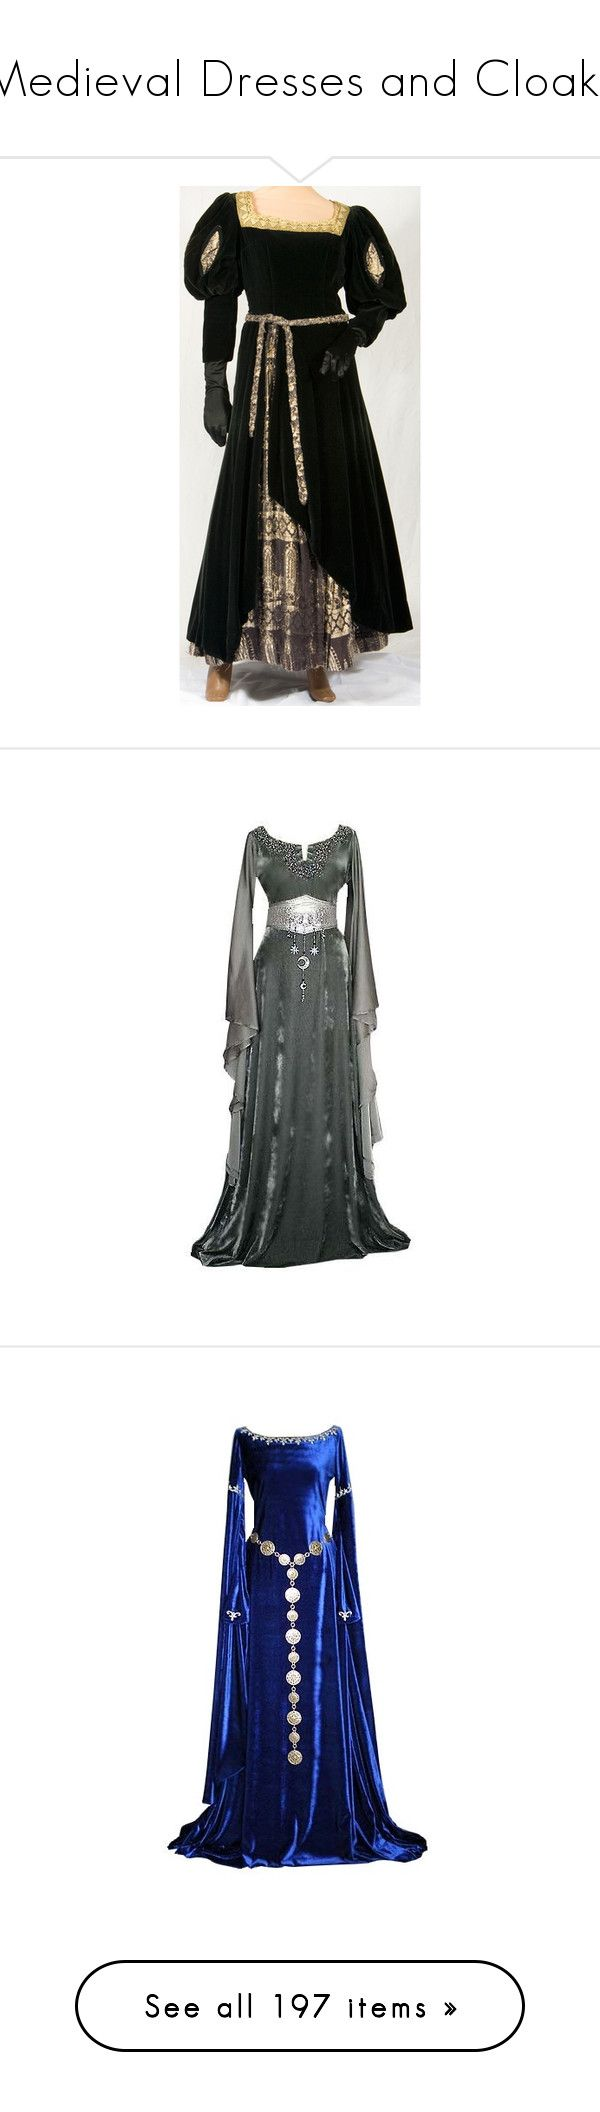 """Medieval Dresses and Cloaks"" by just-call-me-chuck ❤ liked on Polyvore featuring costumes, dresses, medieval, renaissance, plus size womens costumes, plus size costumes, queen costume, renaissance princess costume, plus size womens halloween costumes and gowns"